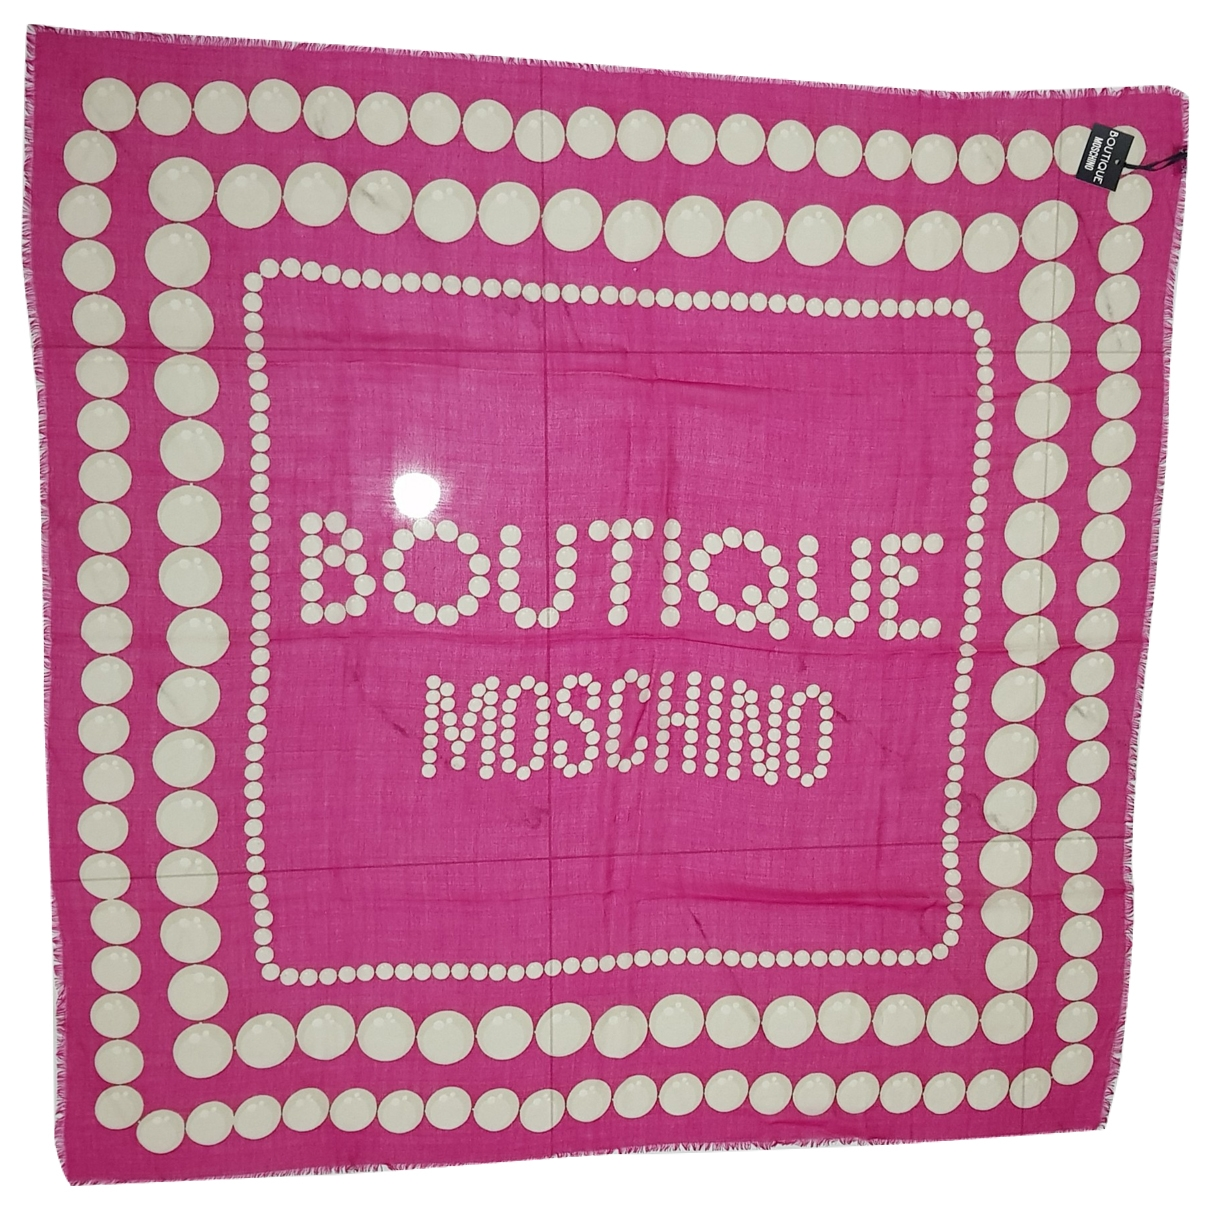 Moschino \N Pink Wool scarf for Women \N